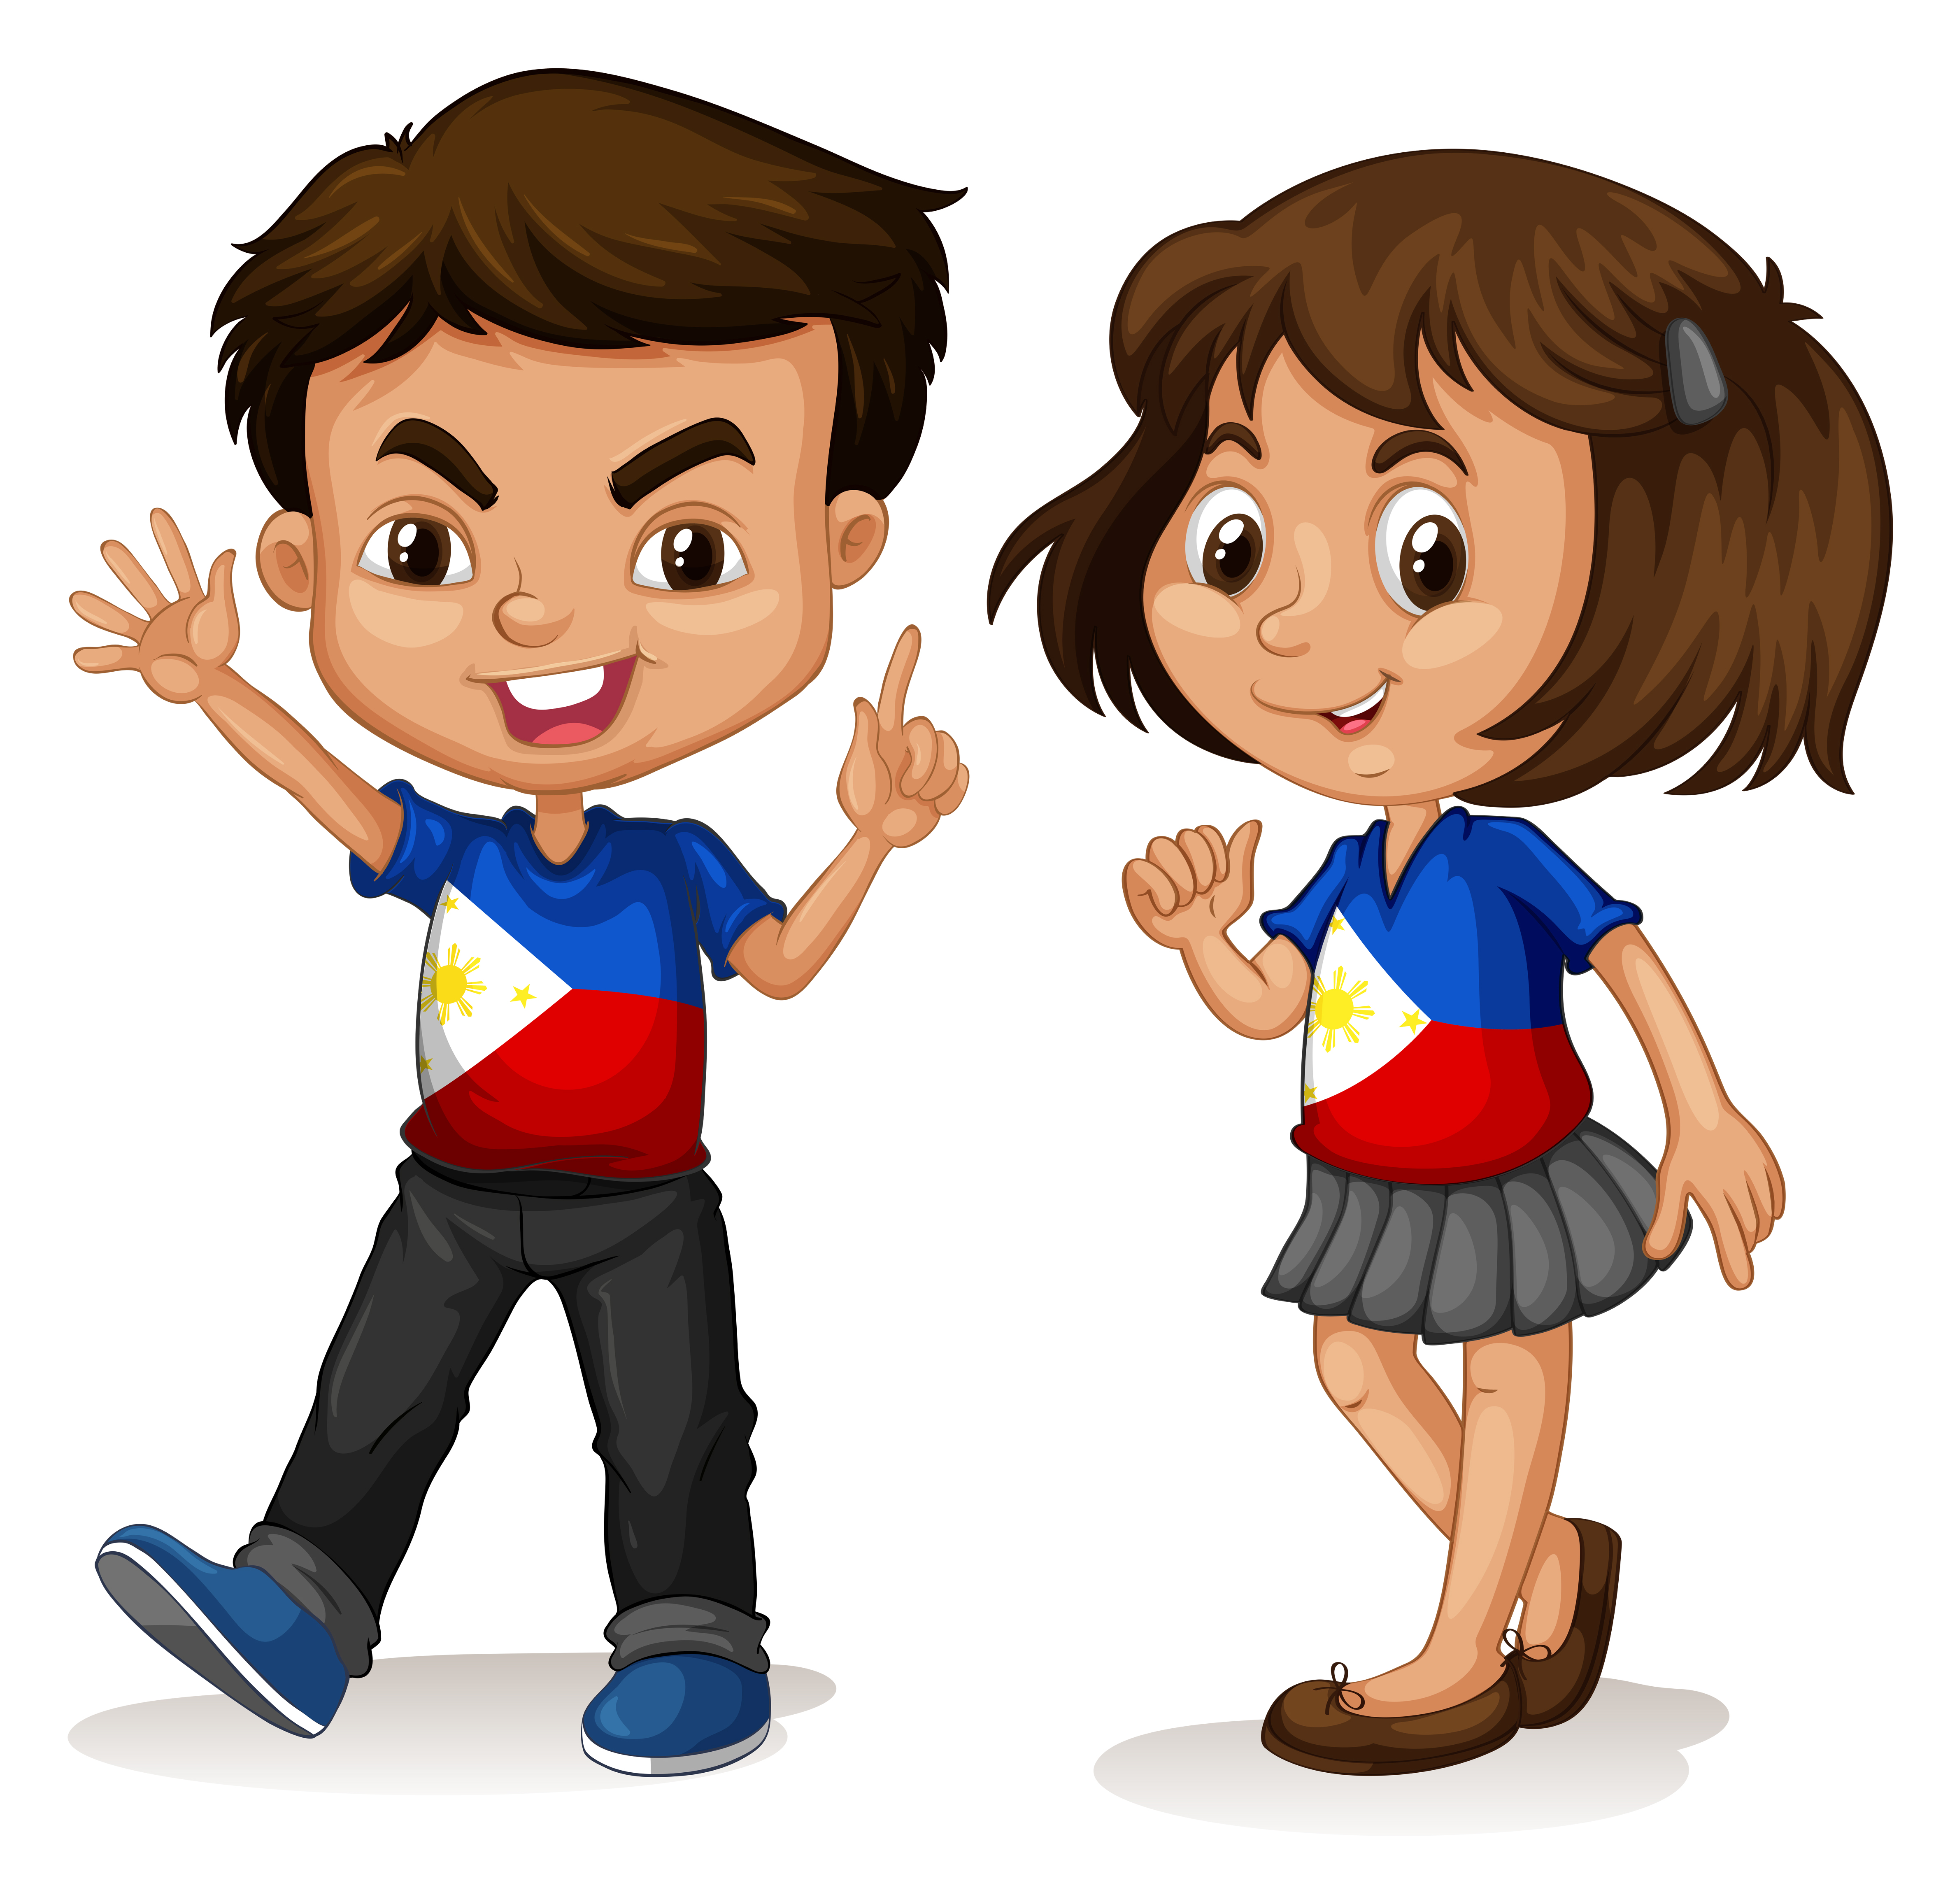 cartoon-boy-and-girl-clip-art-face-down-ass-up-thats-the-way-we-like